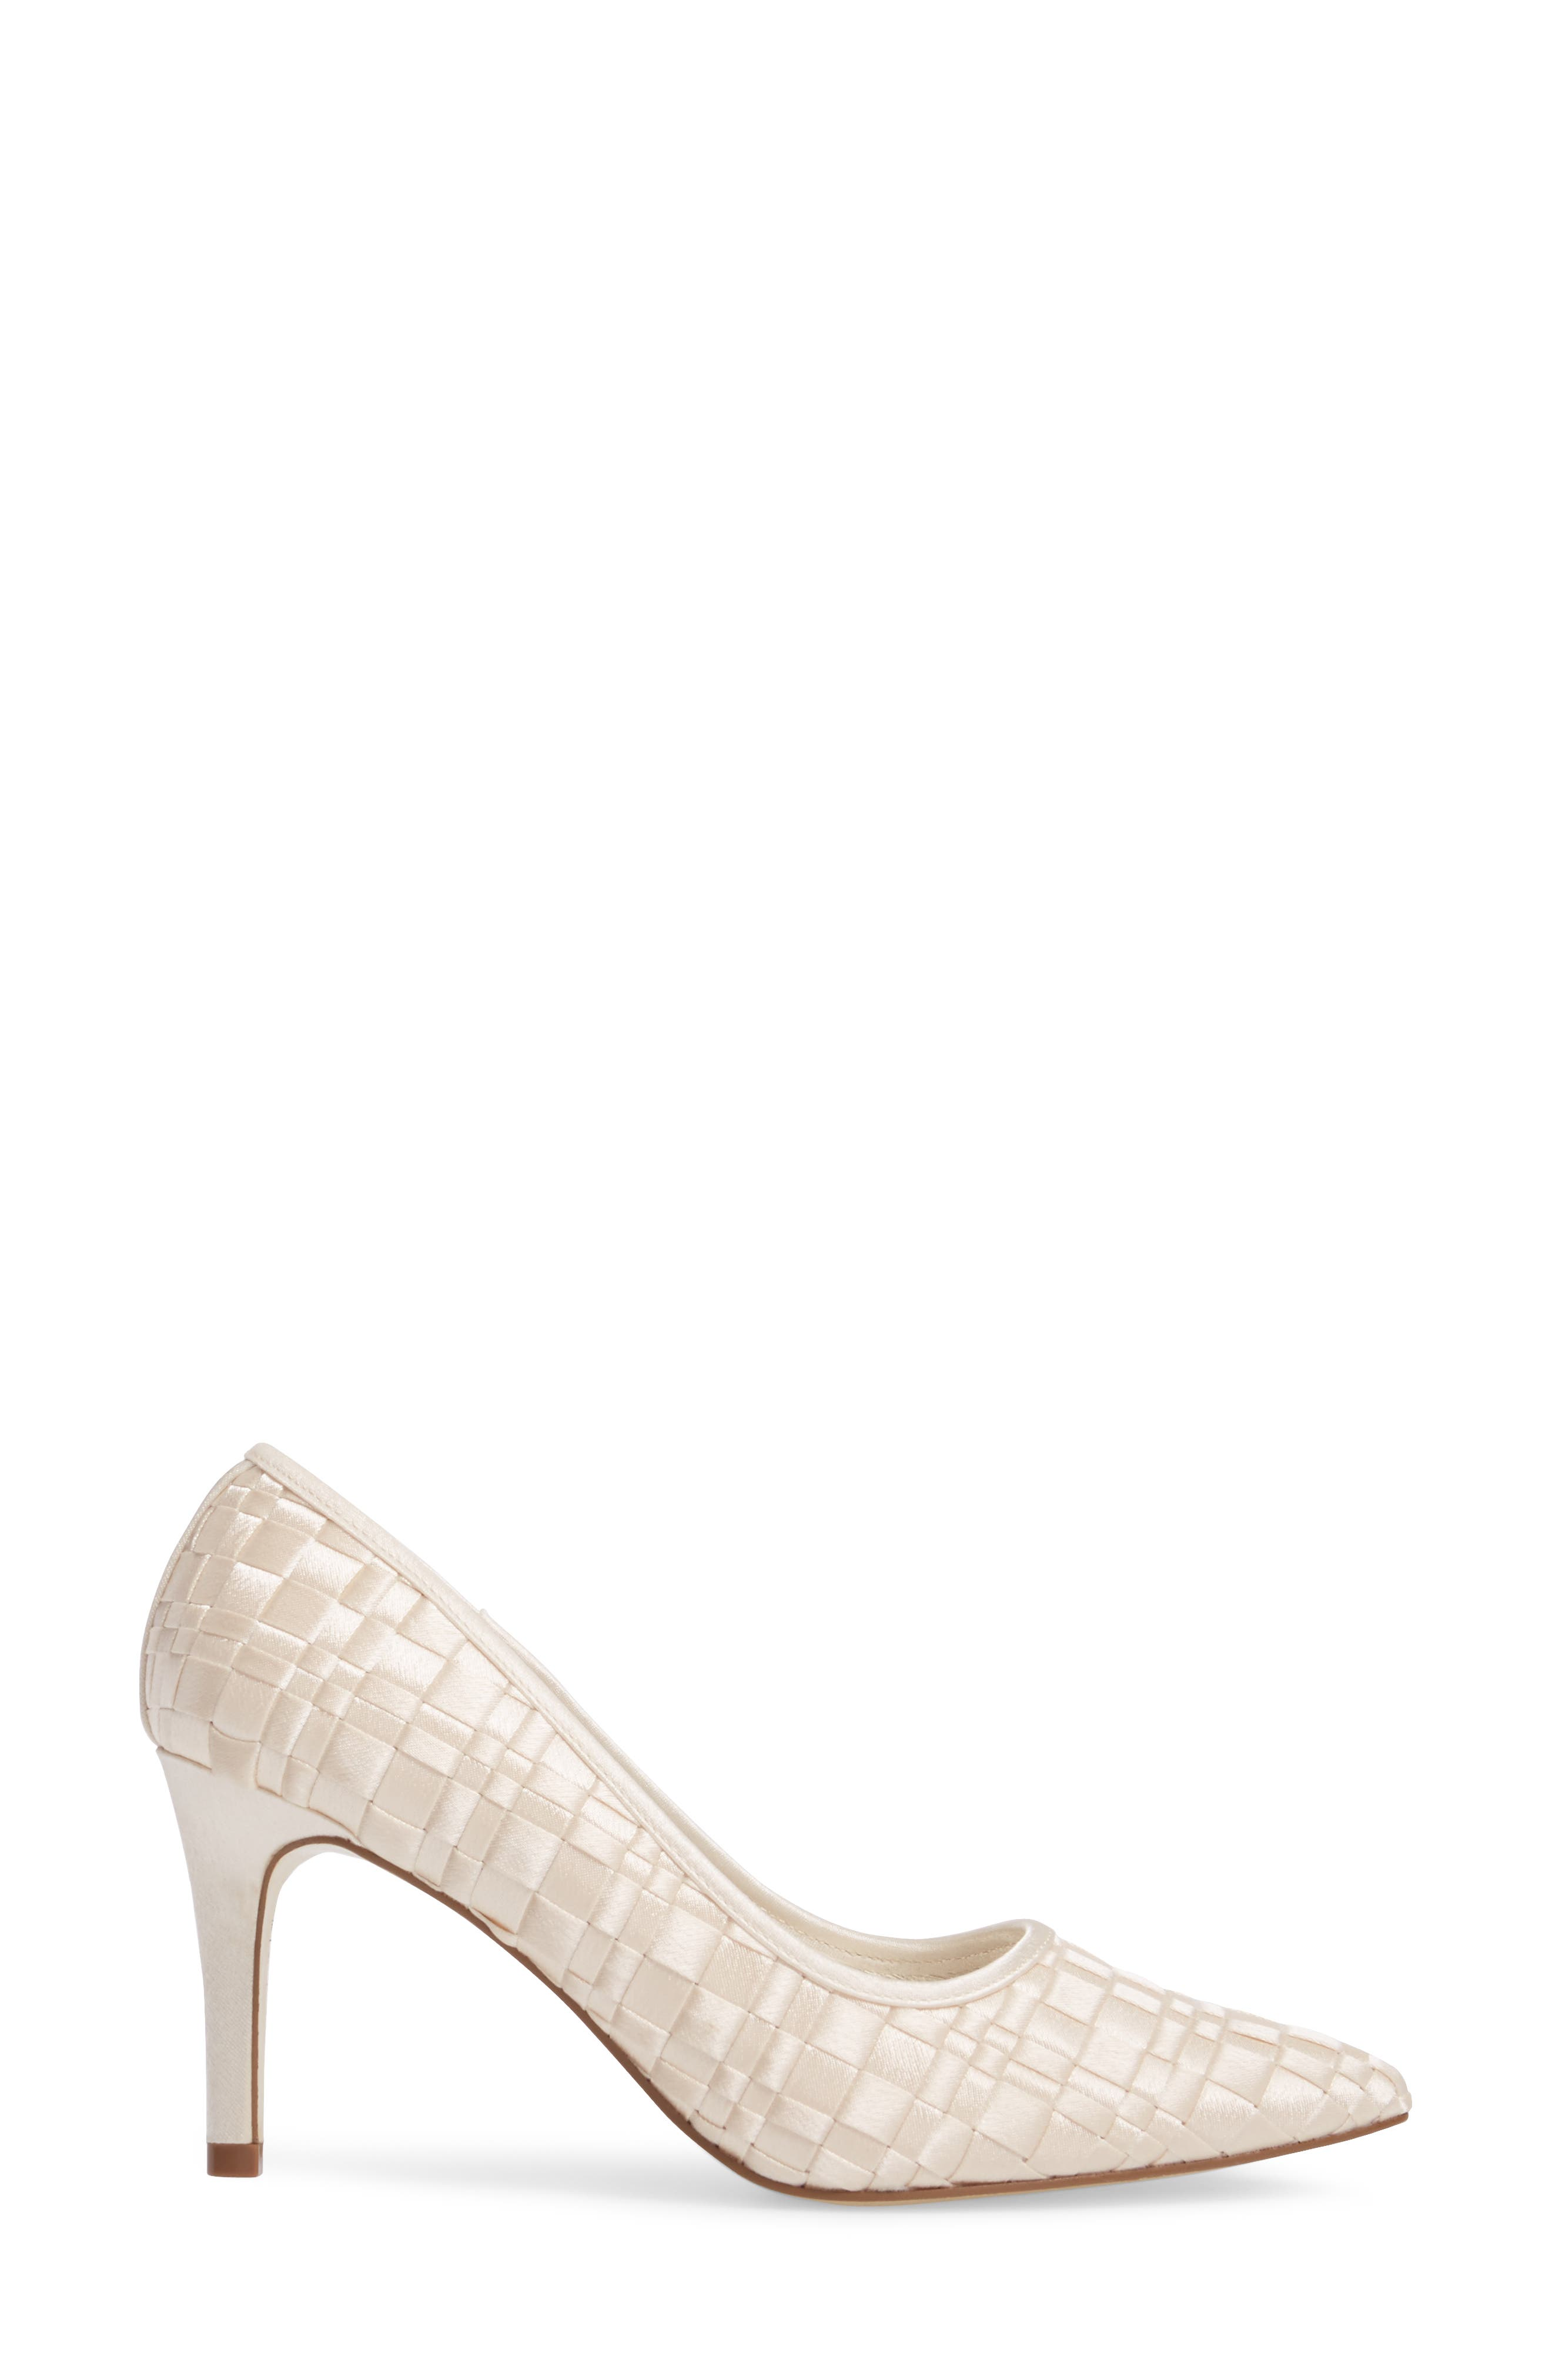 Hasting Pointy Toe Pump,                             Alternate thumbnail 3, color,                             Champagne Satin